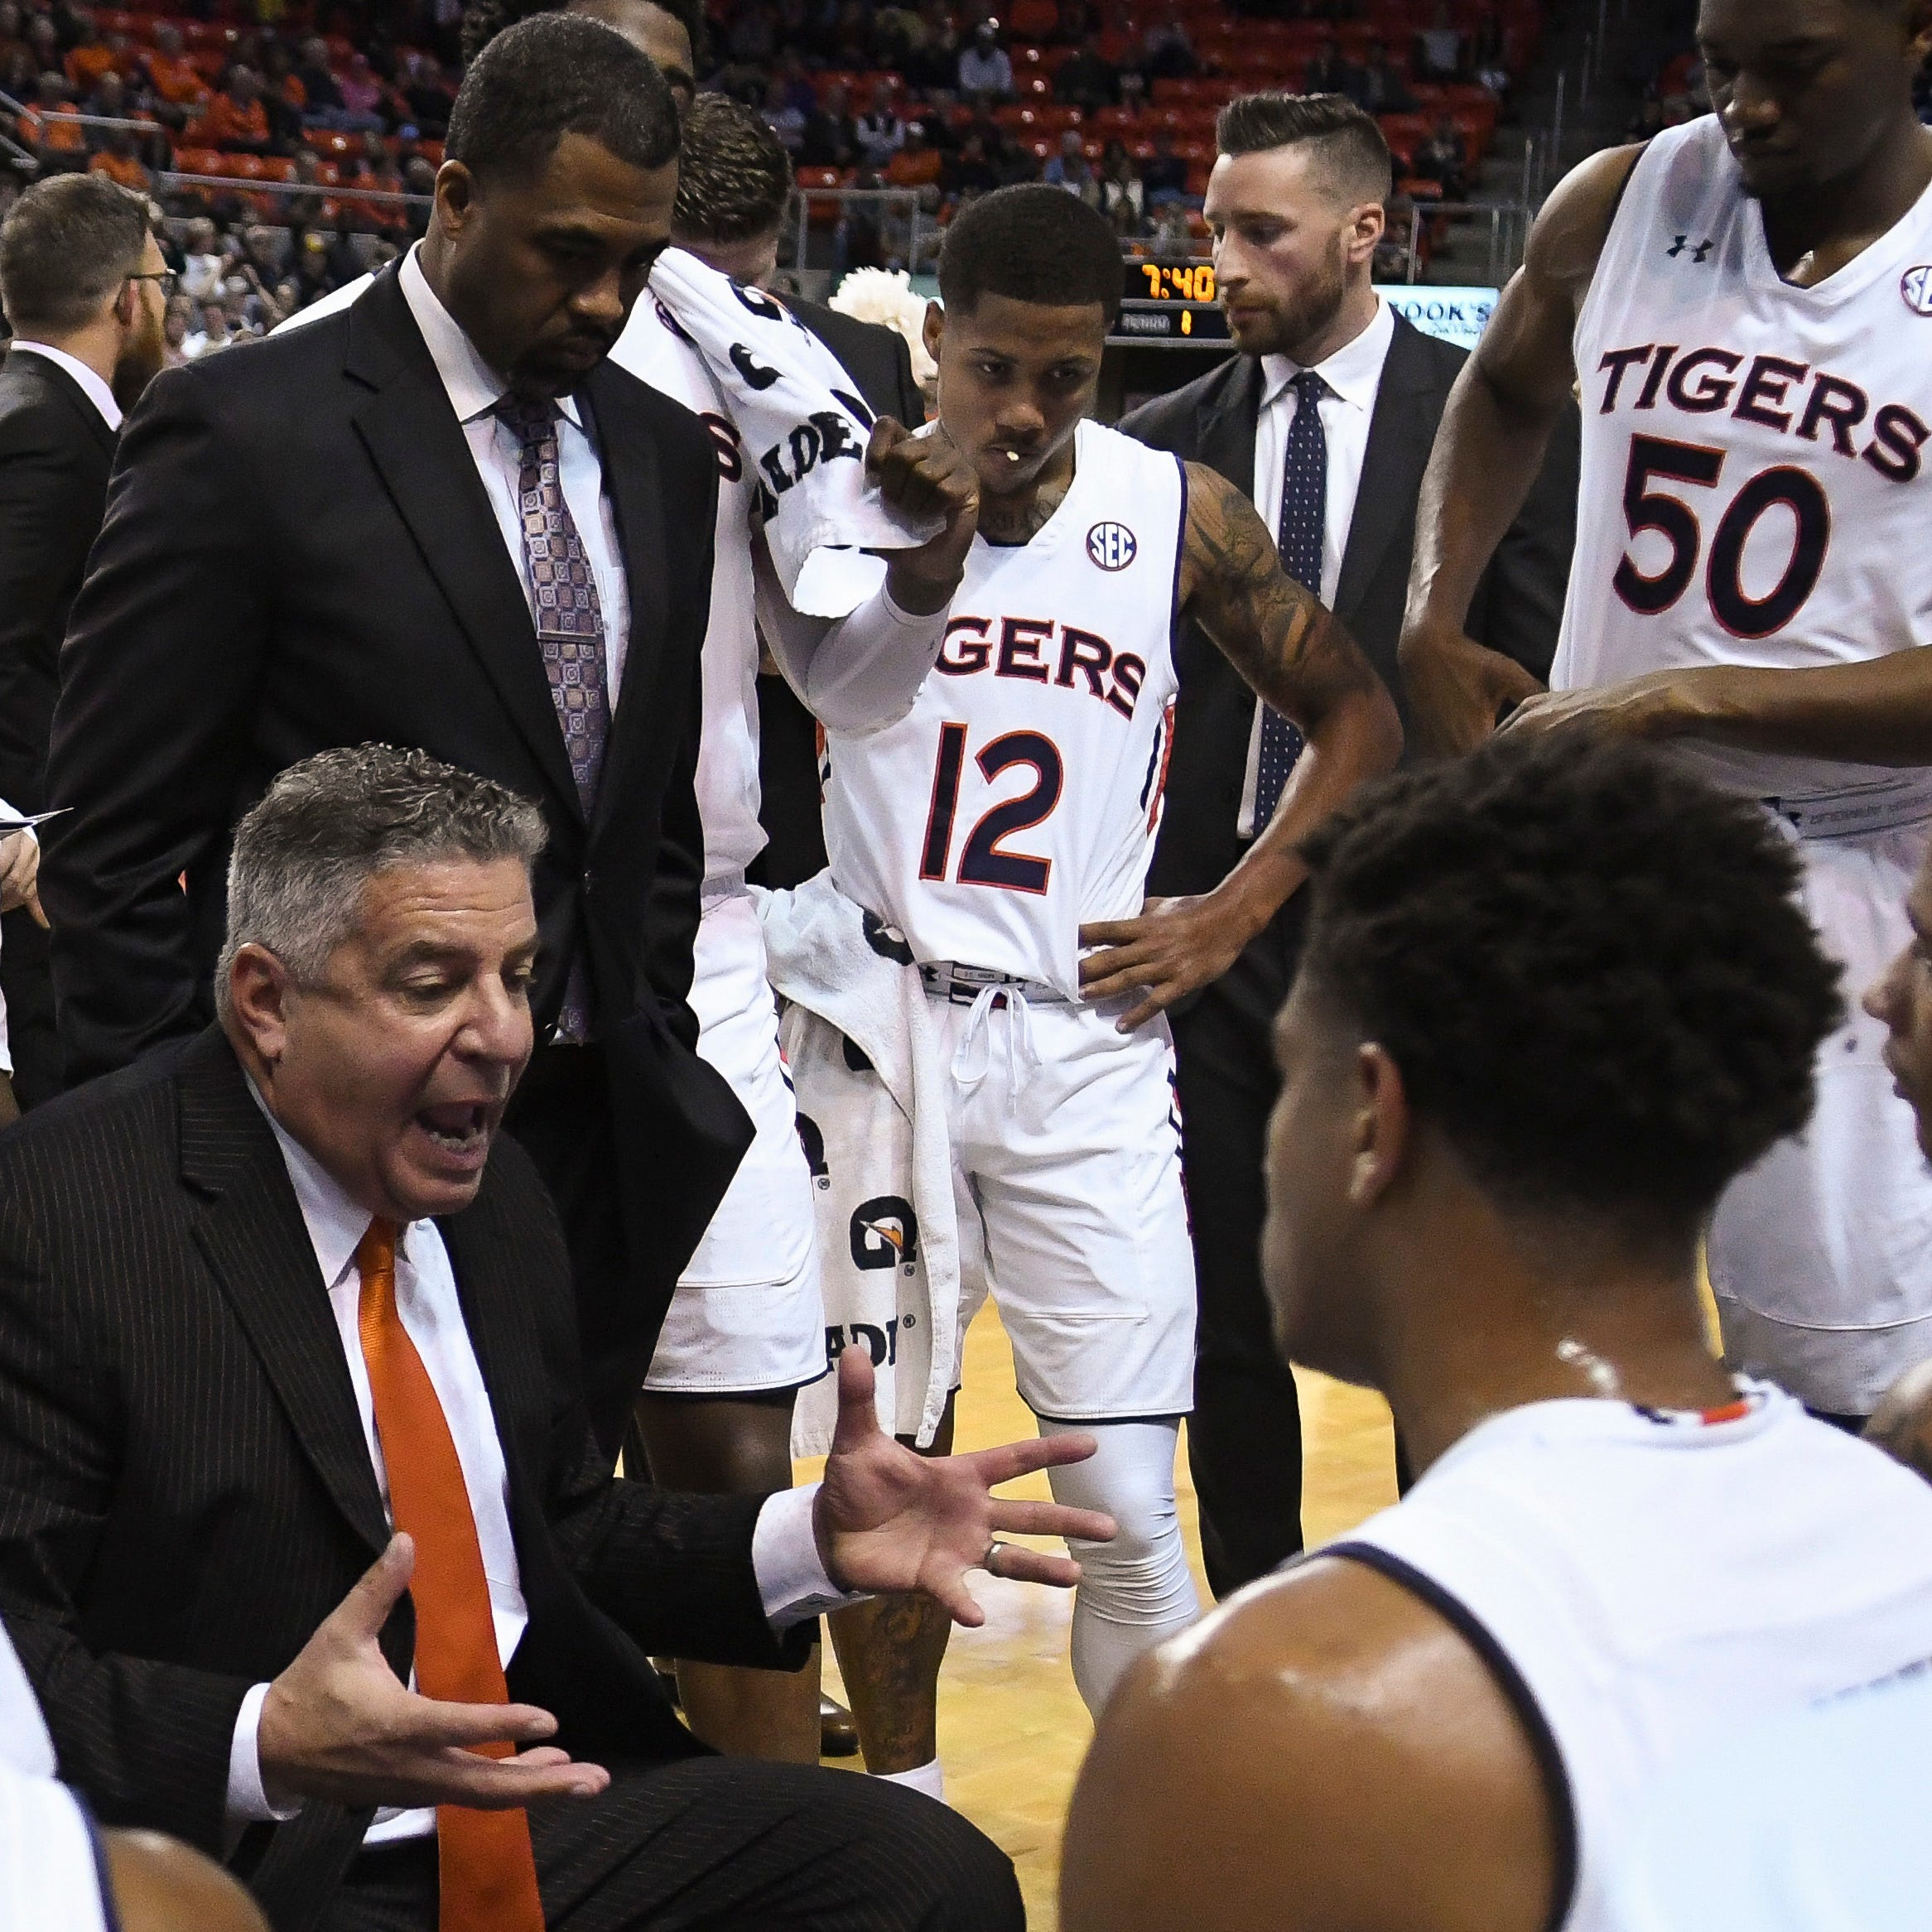 Maui Invitational gives Auburn chance to 'make a statement' on national stage